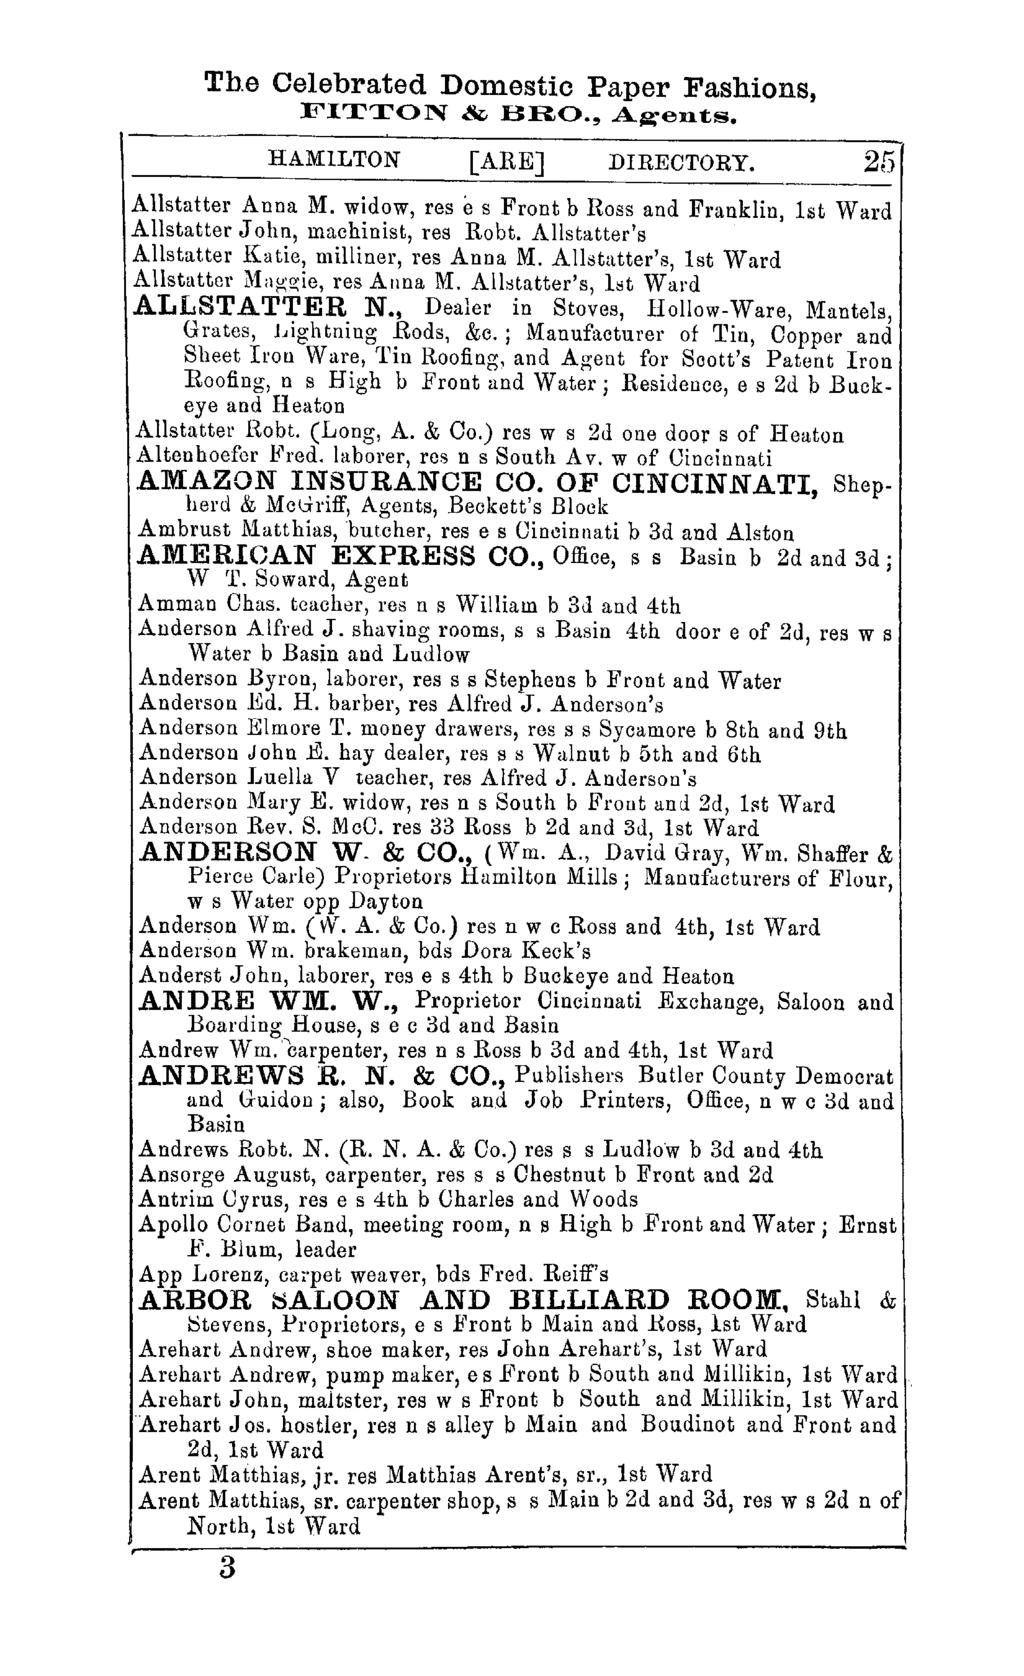 The Celebrated Domestic Paper Fashions, FITTON & BRO., A~en.ts. HAMILTON [ARE] DIRECTORY. 25 Allstatter Anna M. widow, res e s Front b Ross and Franklin, 1st Ward Allstatter John, machinist, res Robt.